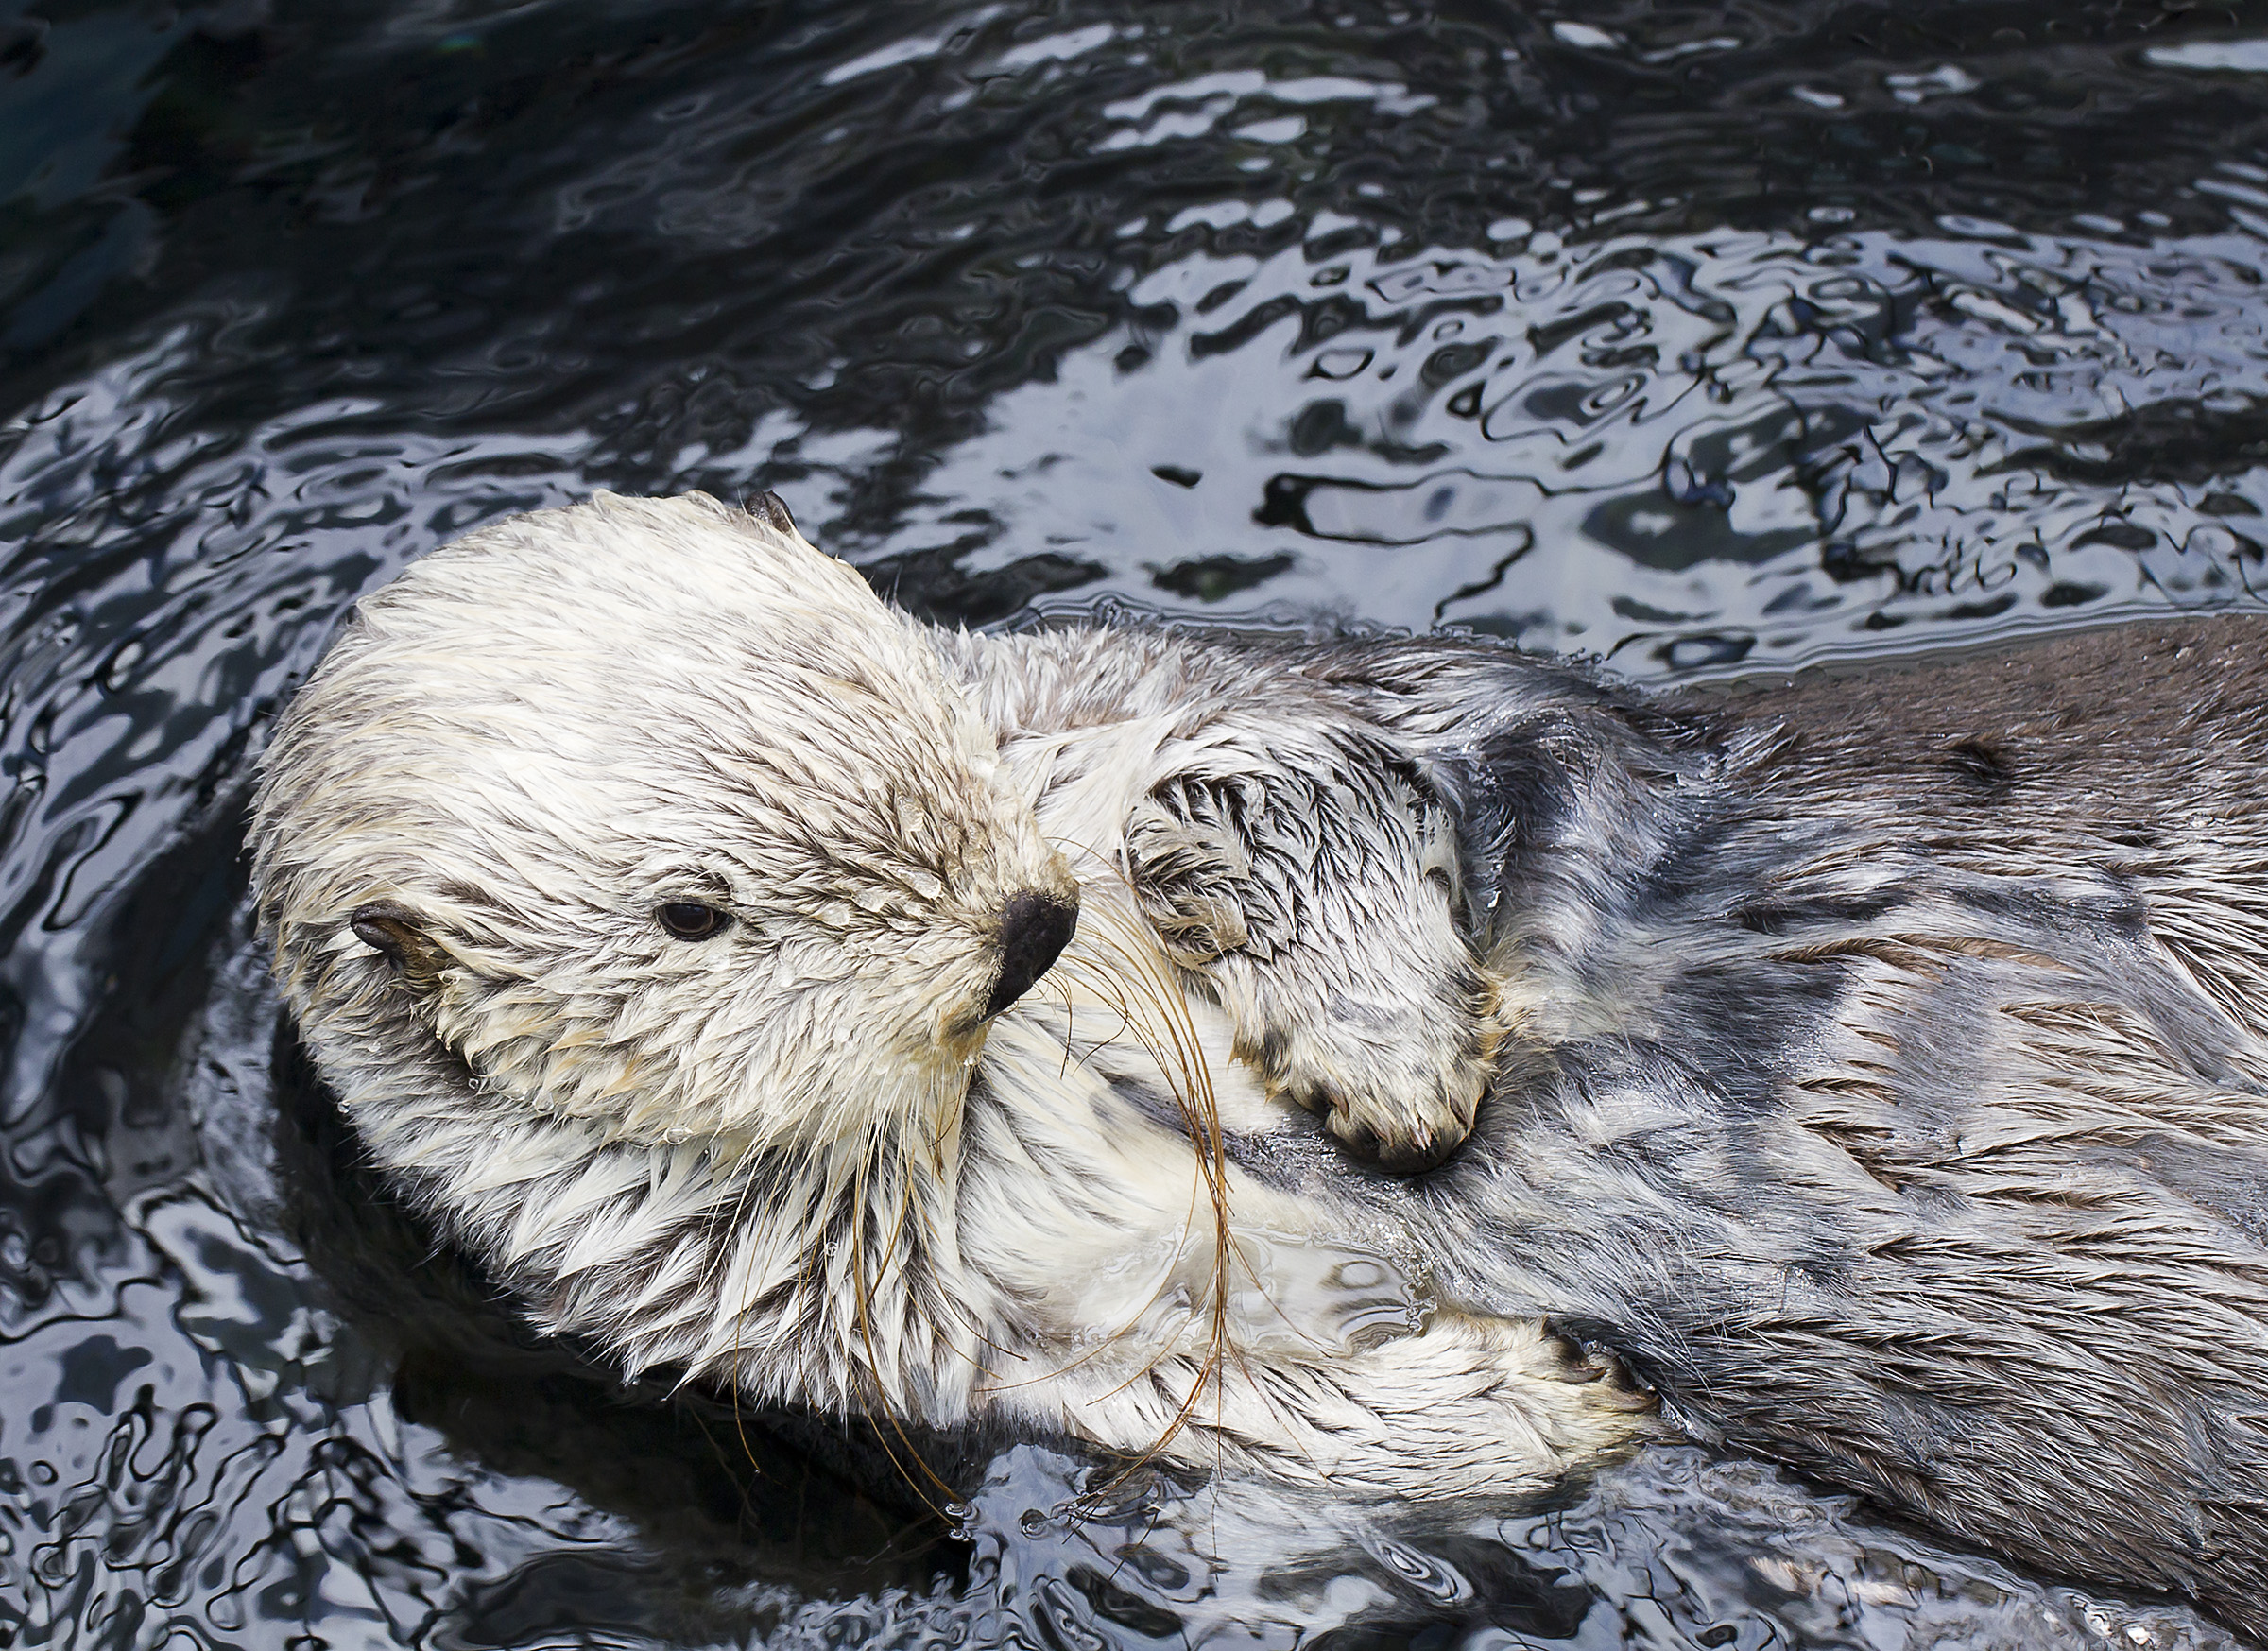 Check Out This Sea Otter's Long Whiskers